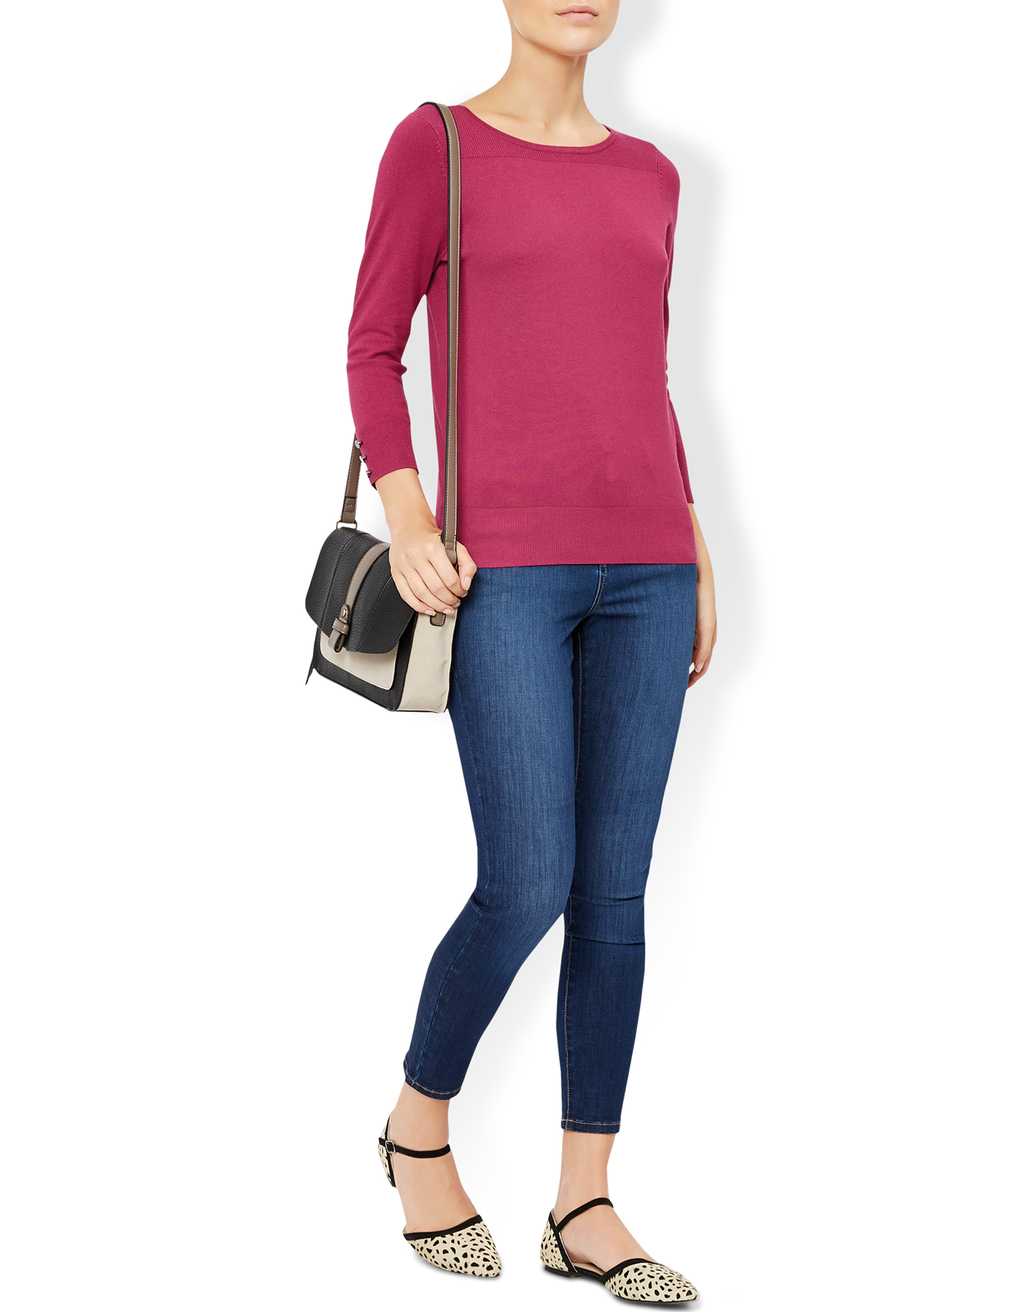 Marianne Smart Jumper - neckline: round neck; pattern: plain; style: standard; predominant colour: hot pink; occasions: casual, work, creative work; length: standard; fibres: cotton - mix; fit: standard fit; sleeve length: 3/4 length; sleeve style: standard; texture group: knits/crochet; pattern type: knitted - fine stitch; season: a/w 2016; wardrobe: highlight